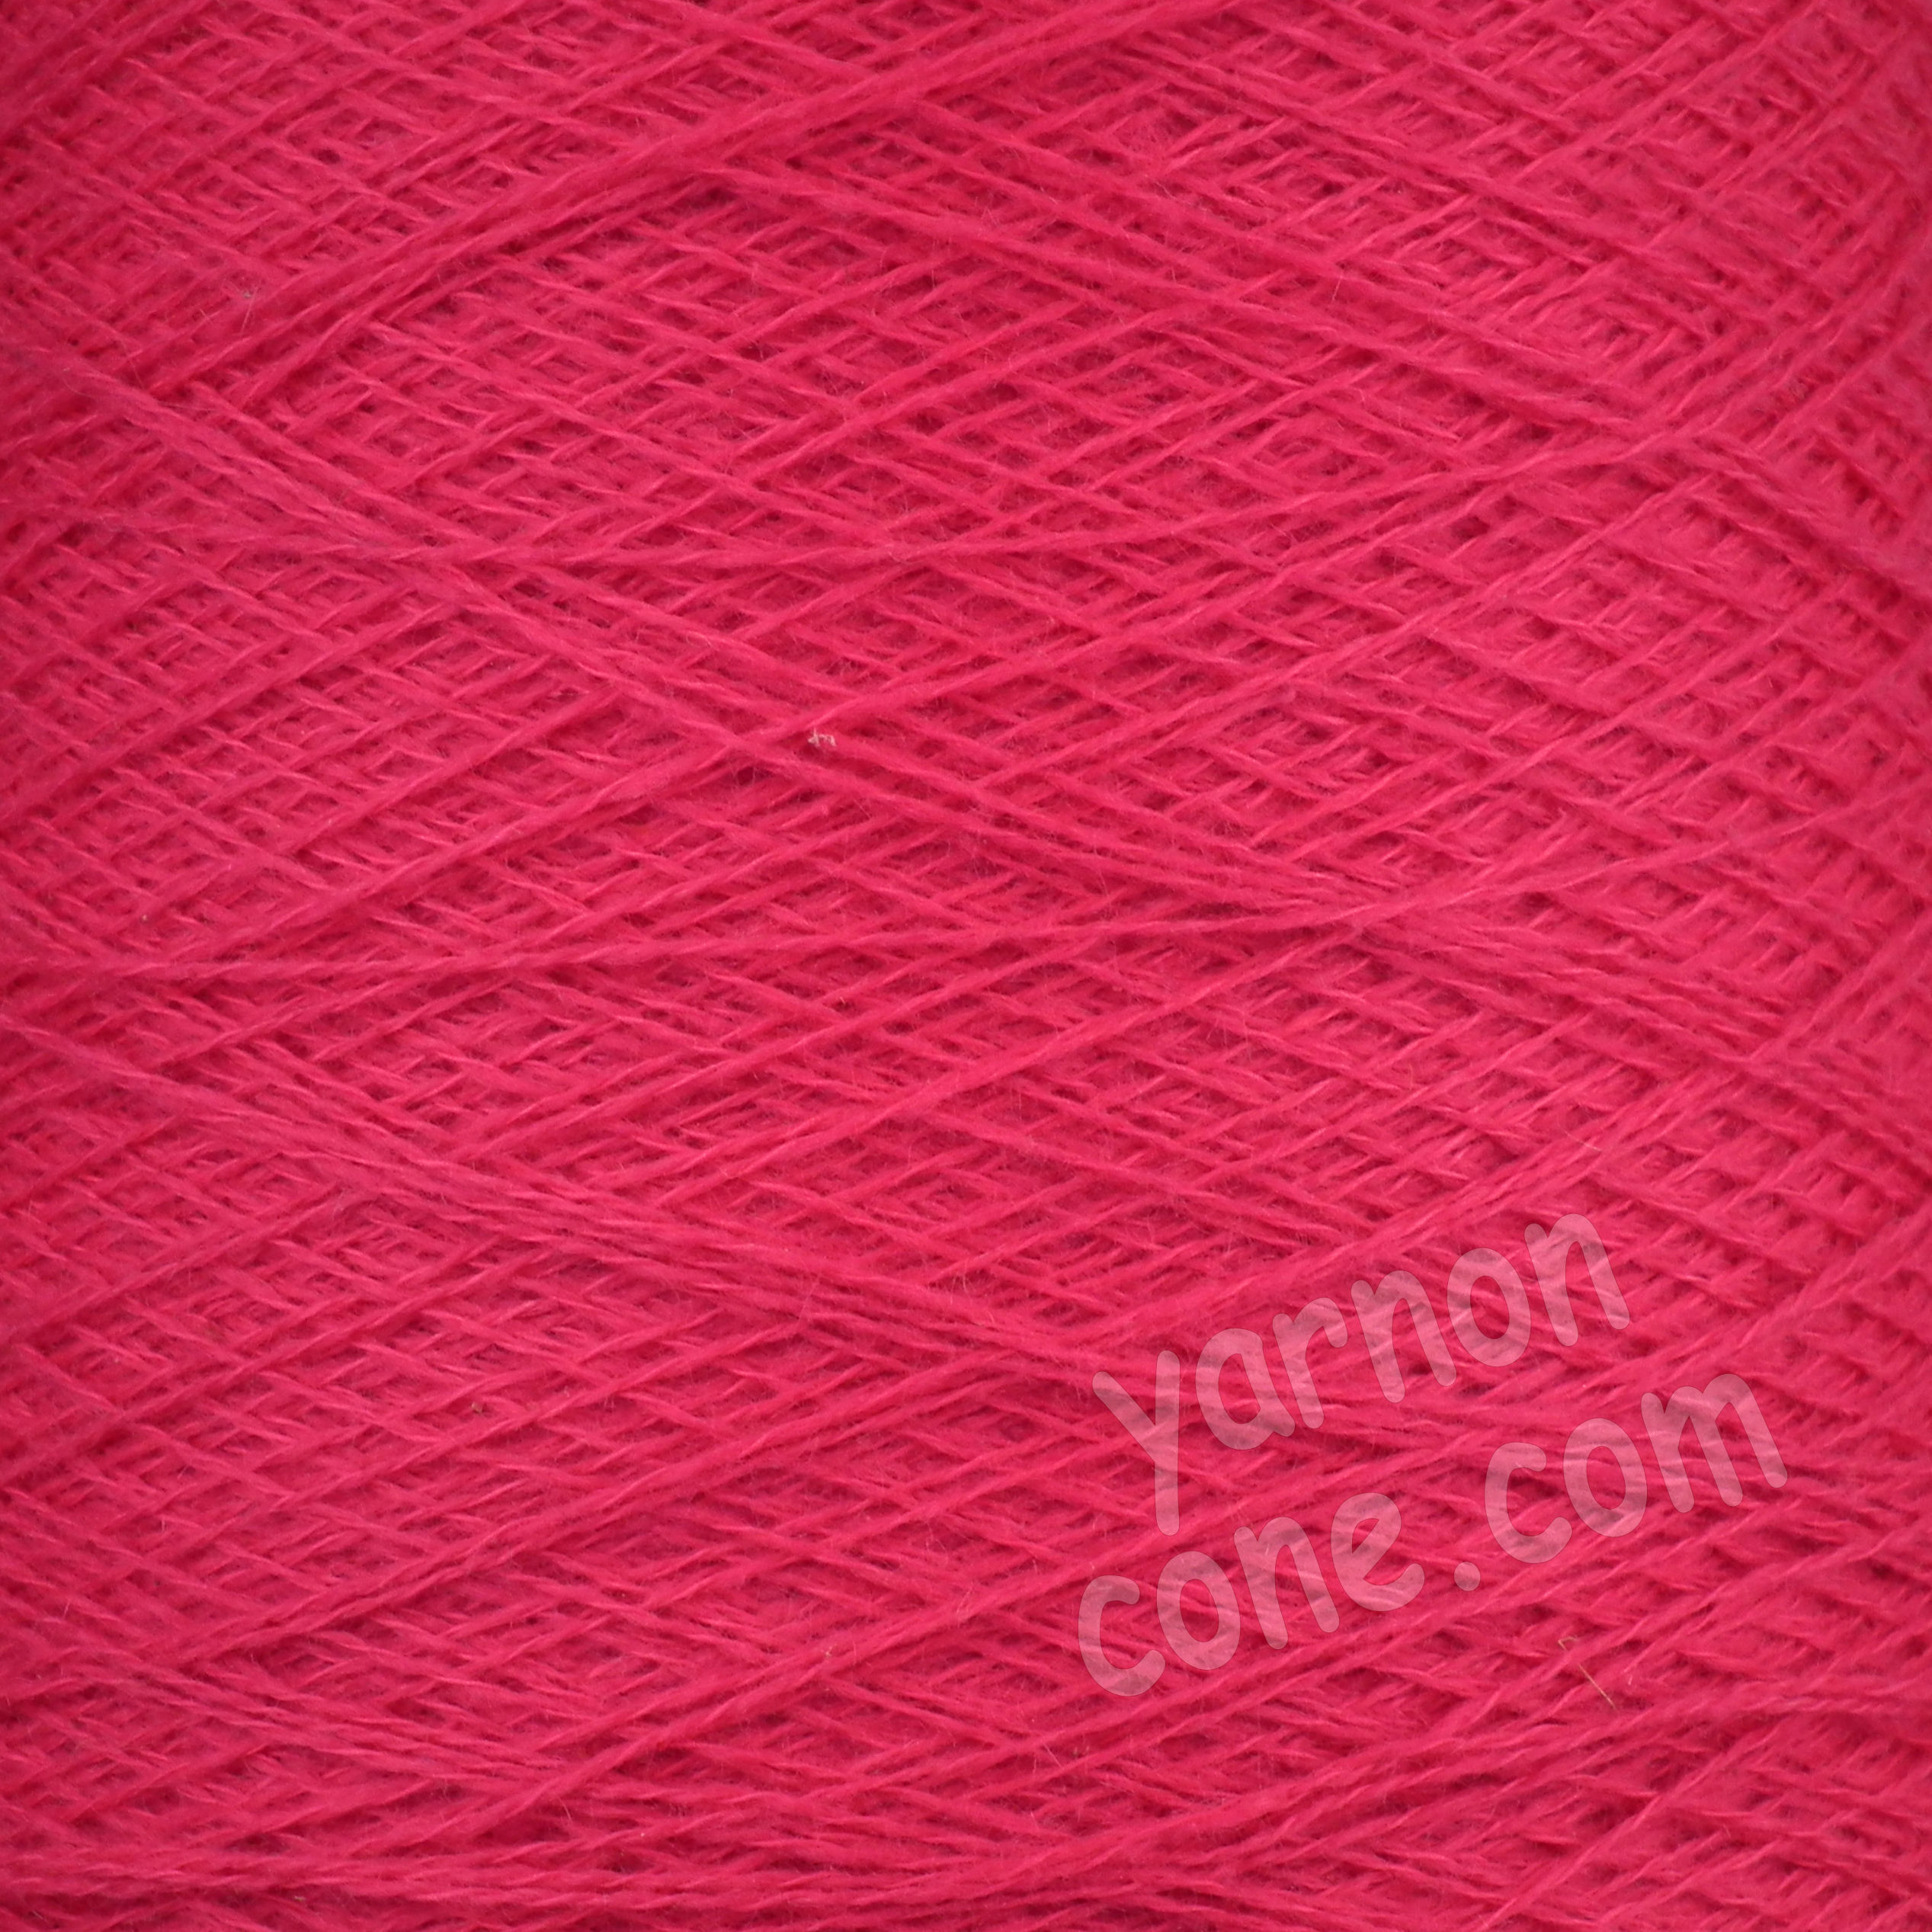 cashmere cotton todd duncan odyssey cone uk knitting soft hot pink bright